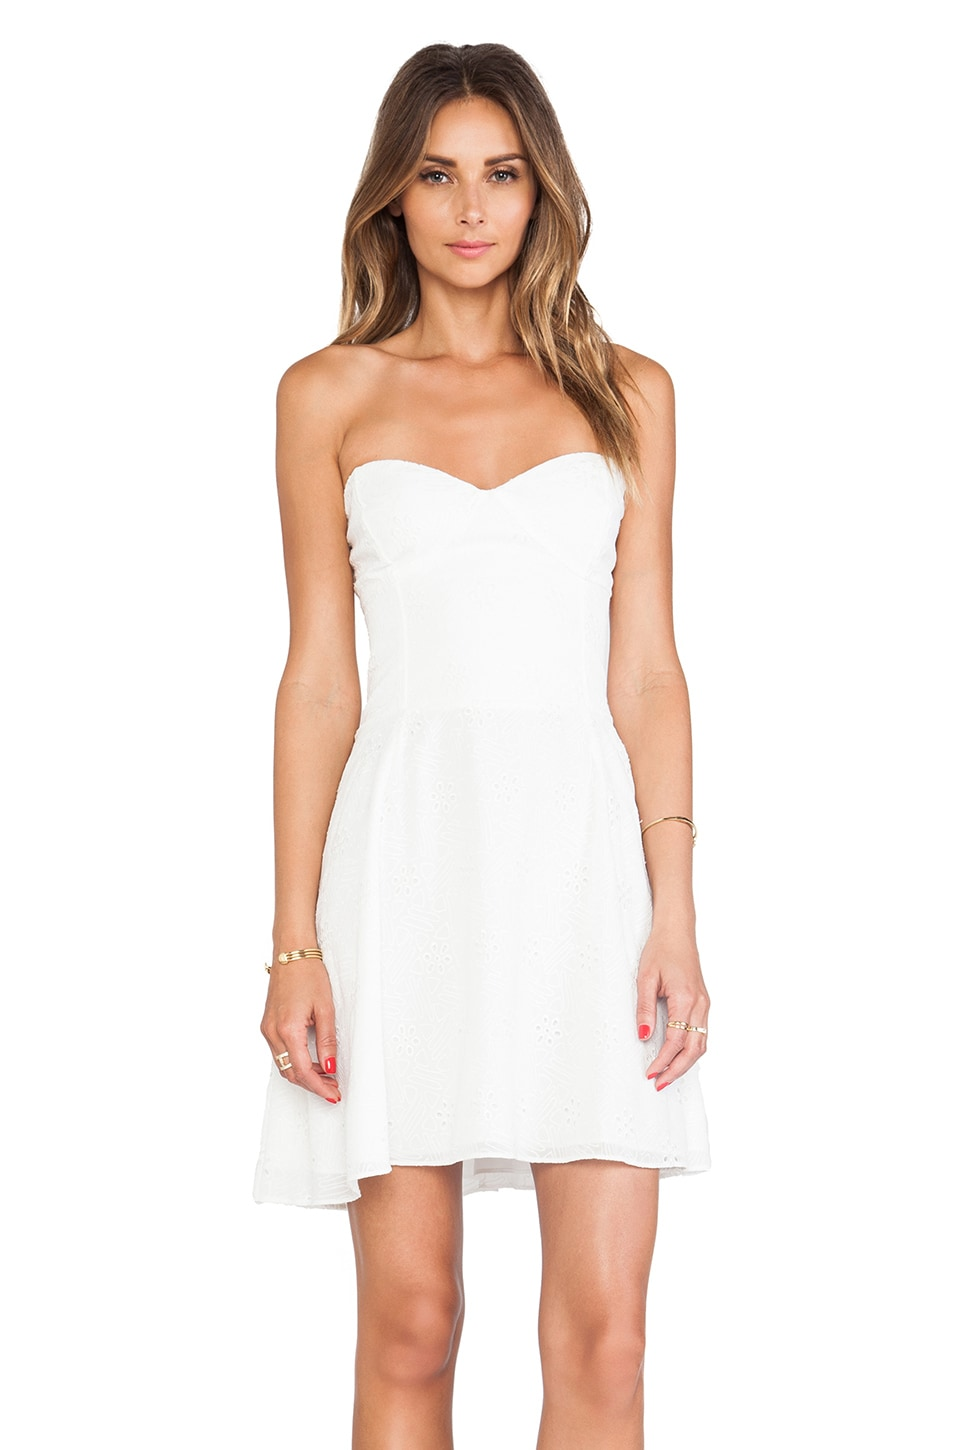 Dolce Vita Singer Dress in White